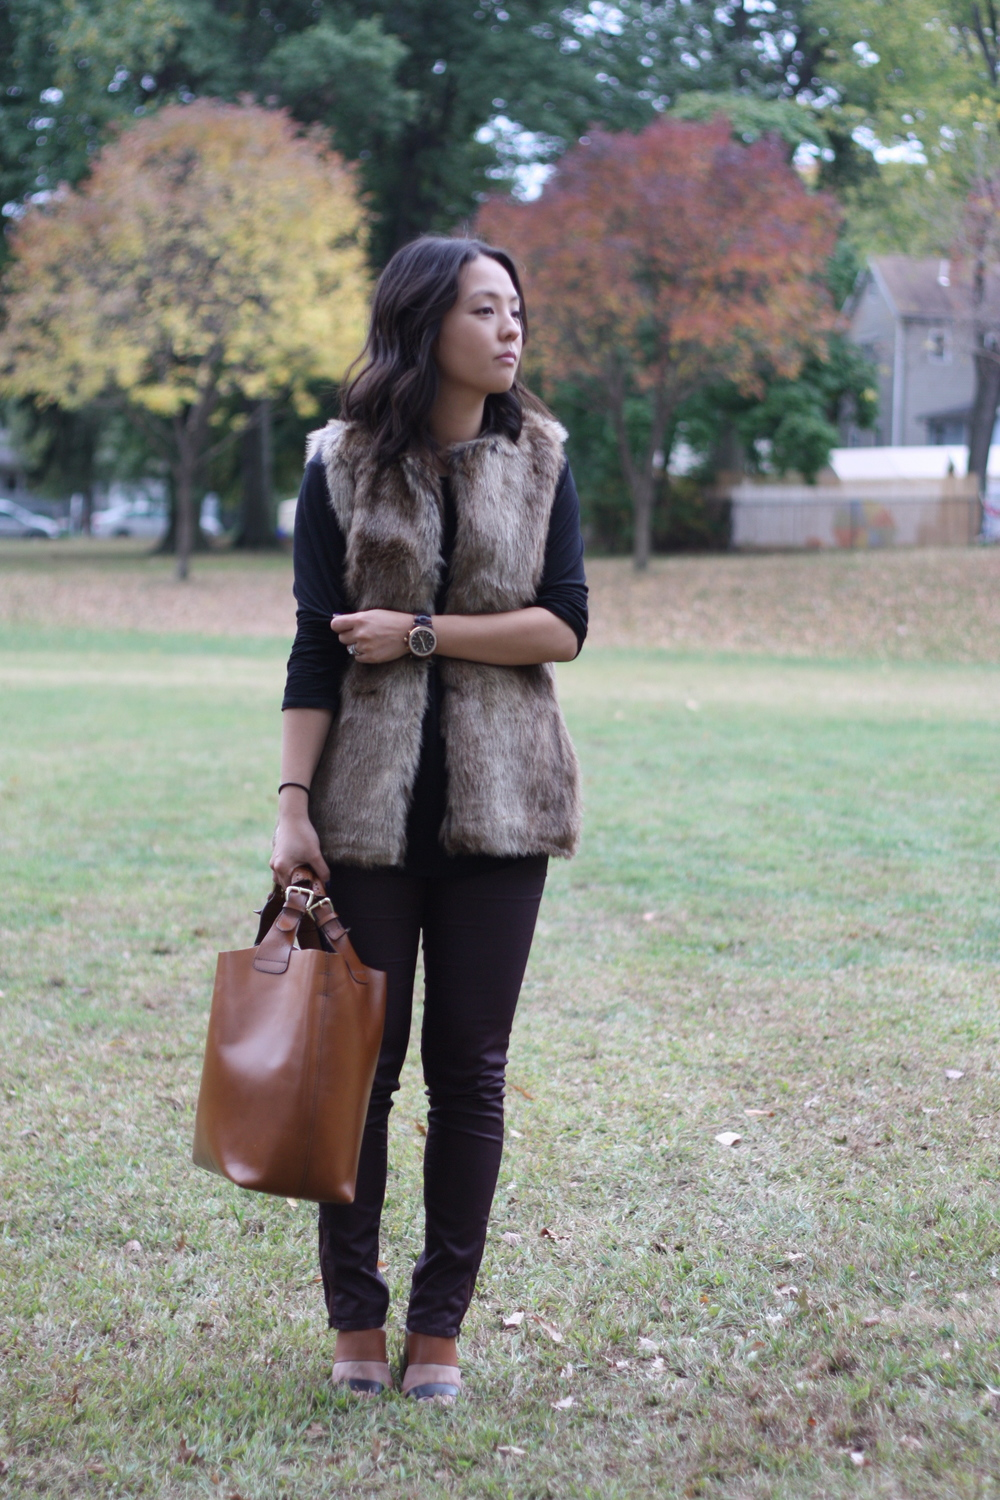 Vest: Zara, Shirt: Theory, Pants: H&M, Bag: Zara, Shoes: Steve Madden